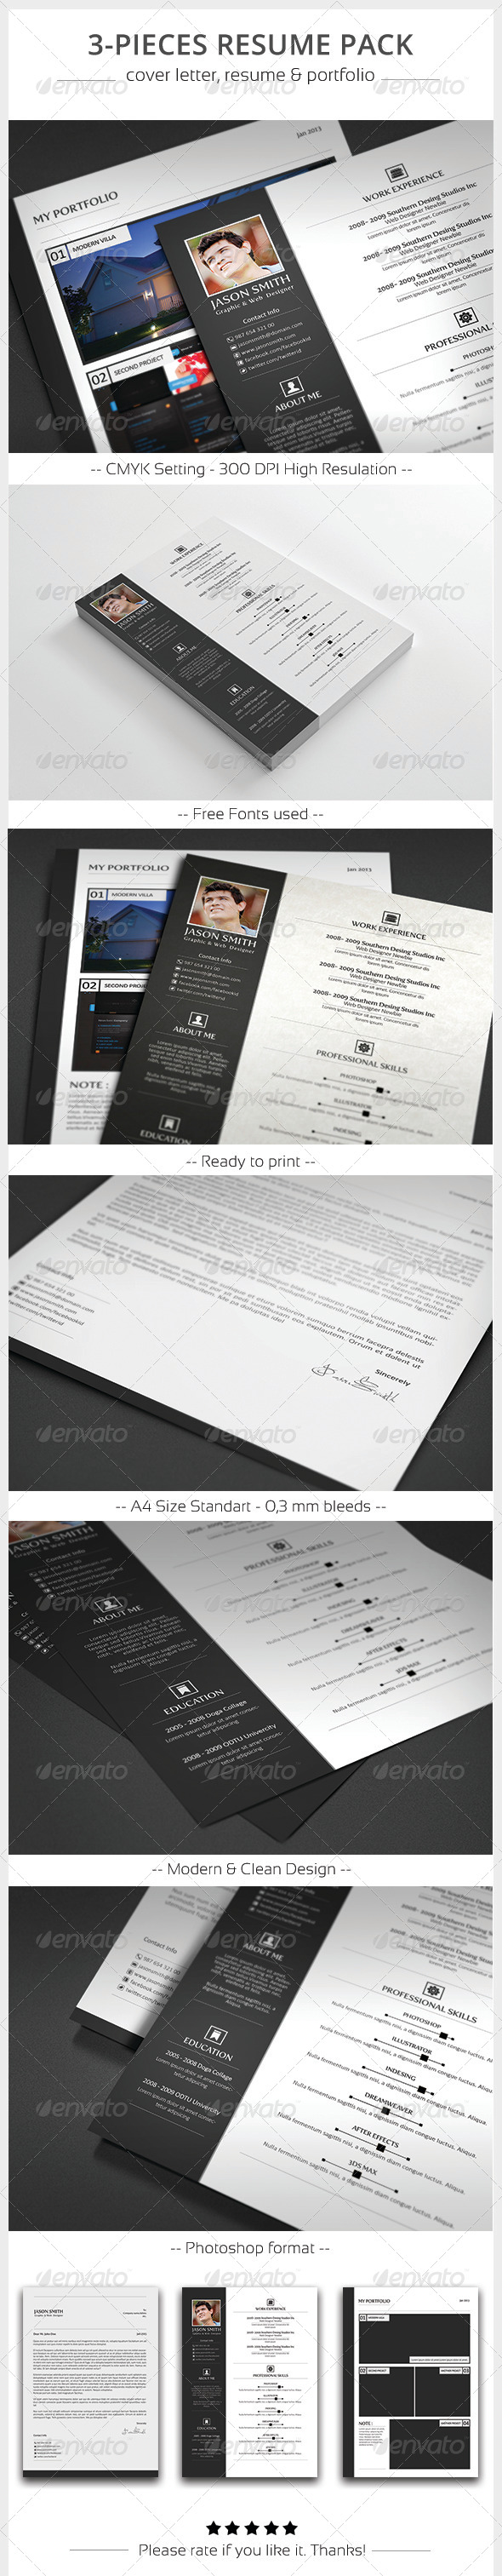 GraphicRiver 3-Pieces Resume Pack 5866894